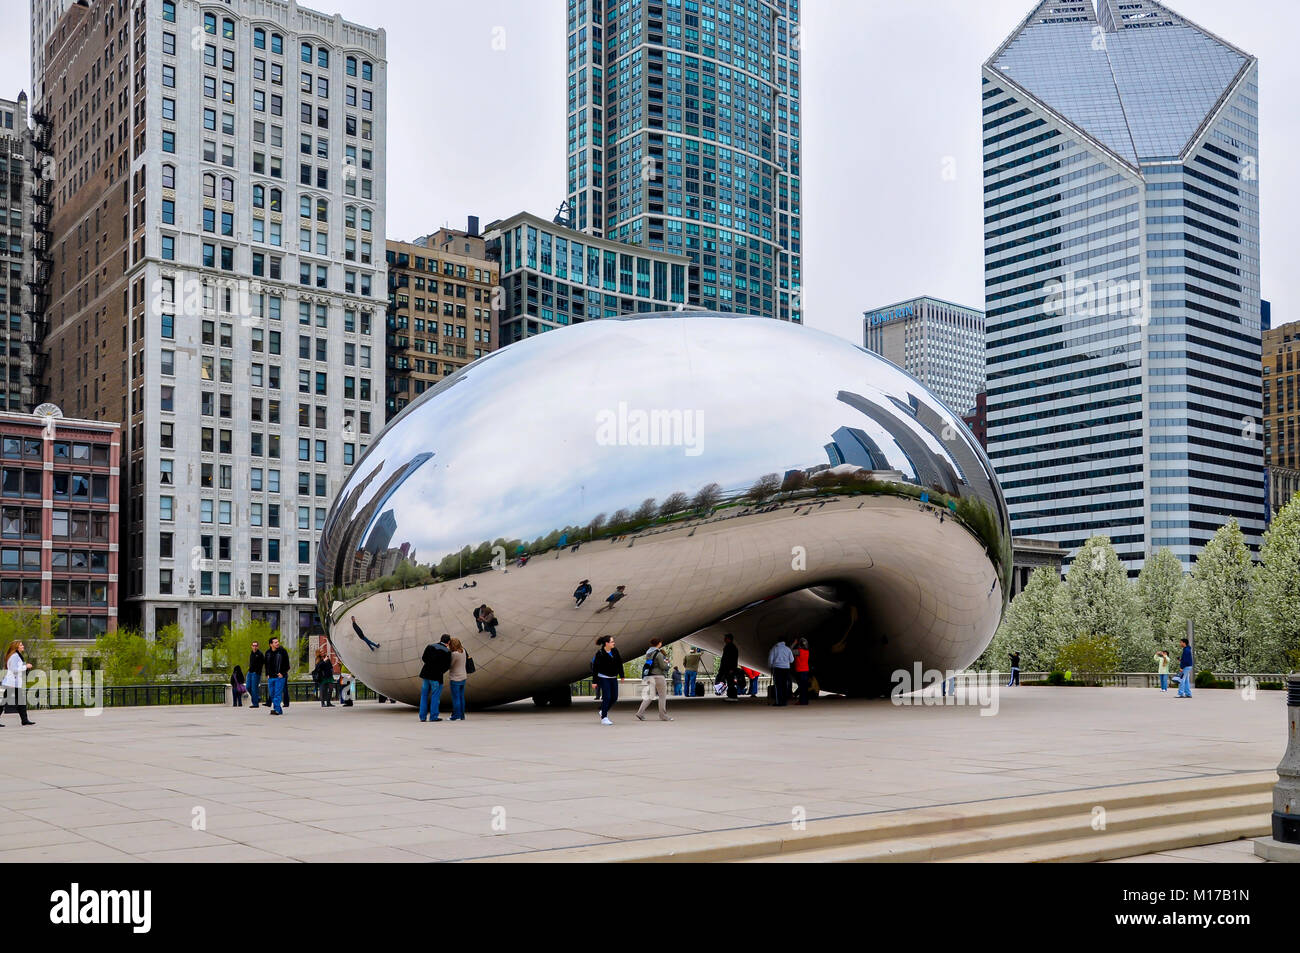 Chicago, IL - MAY 5, 2011 - Cloud Gate (The Bean) Sculpture in Millennium Park with tourists and view of Chicago's - Stock Image